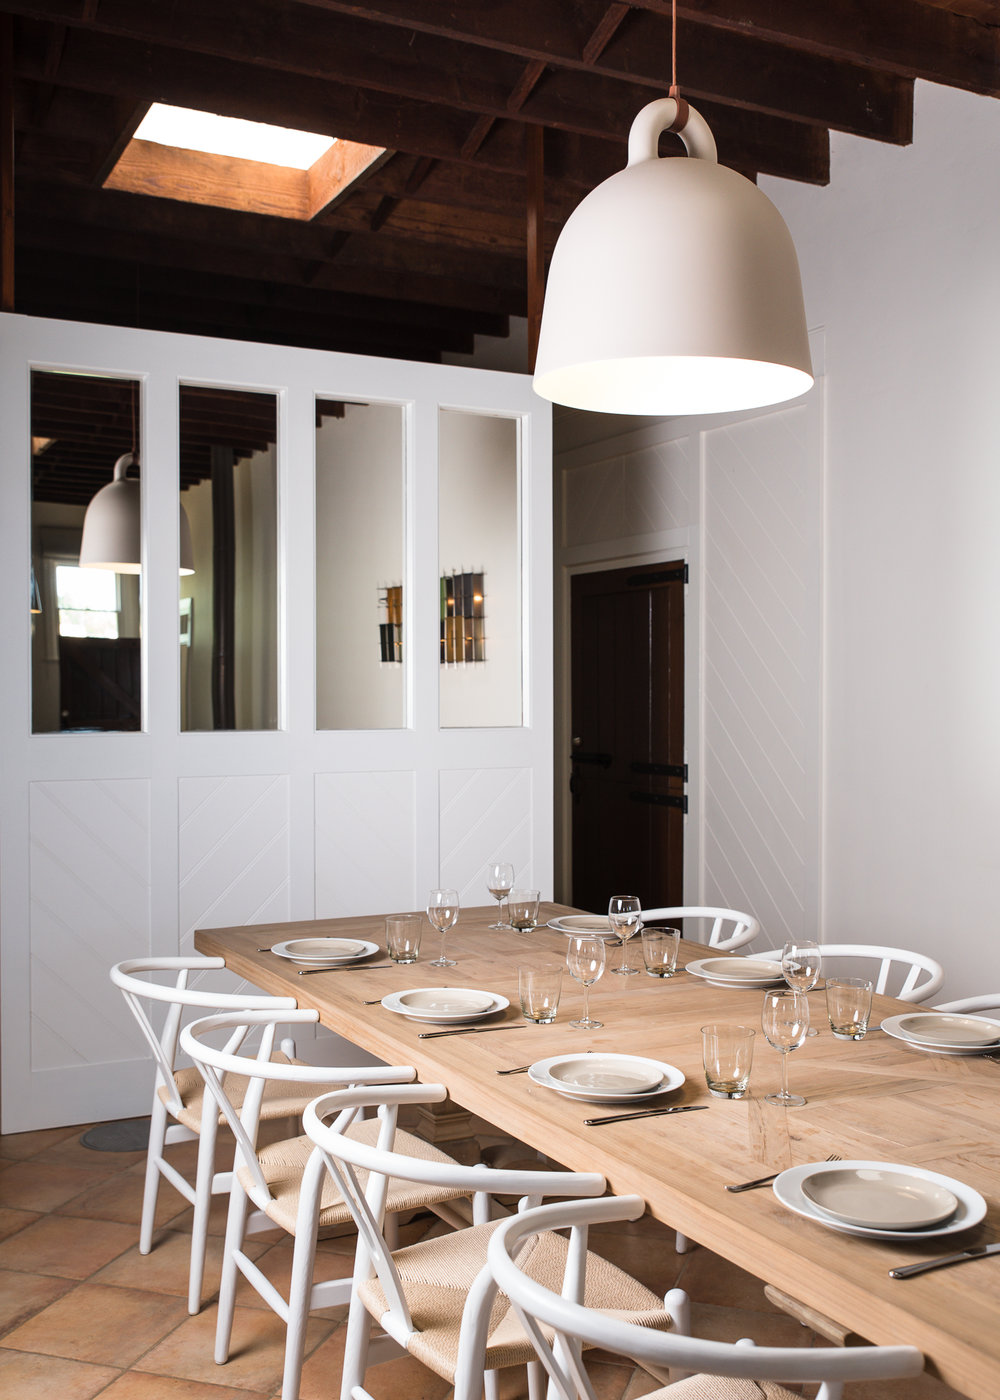 Designer MCM Furniture and Contemporary luxury interiors at The Coach House, Mona Farm